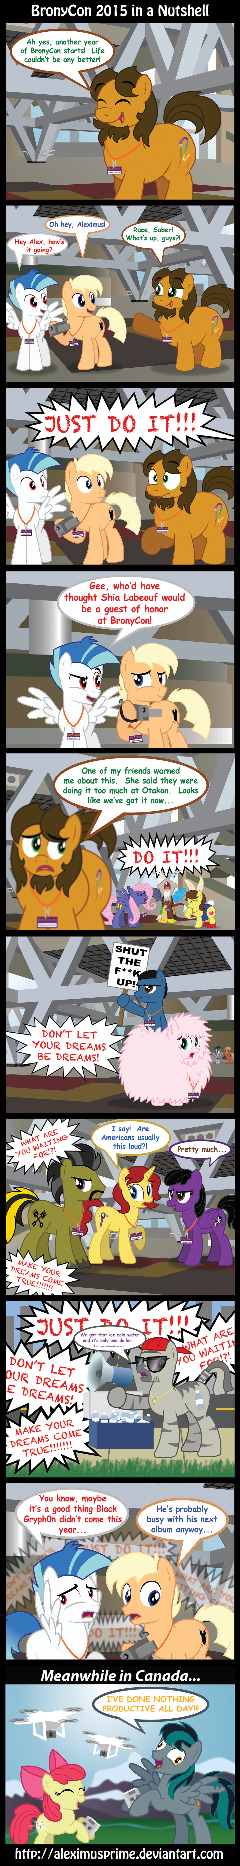 BronyCon 2015 in a Nutshell